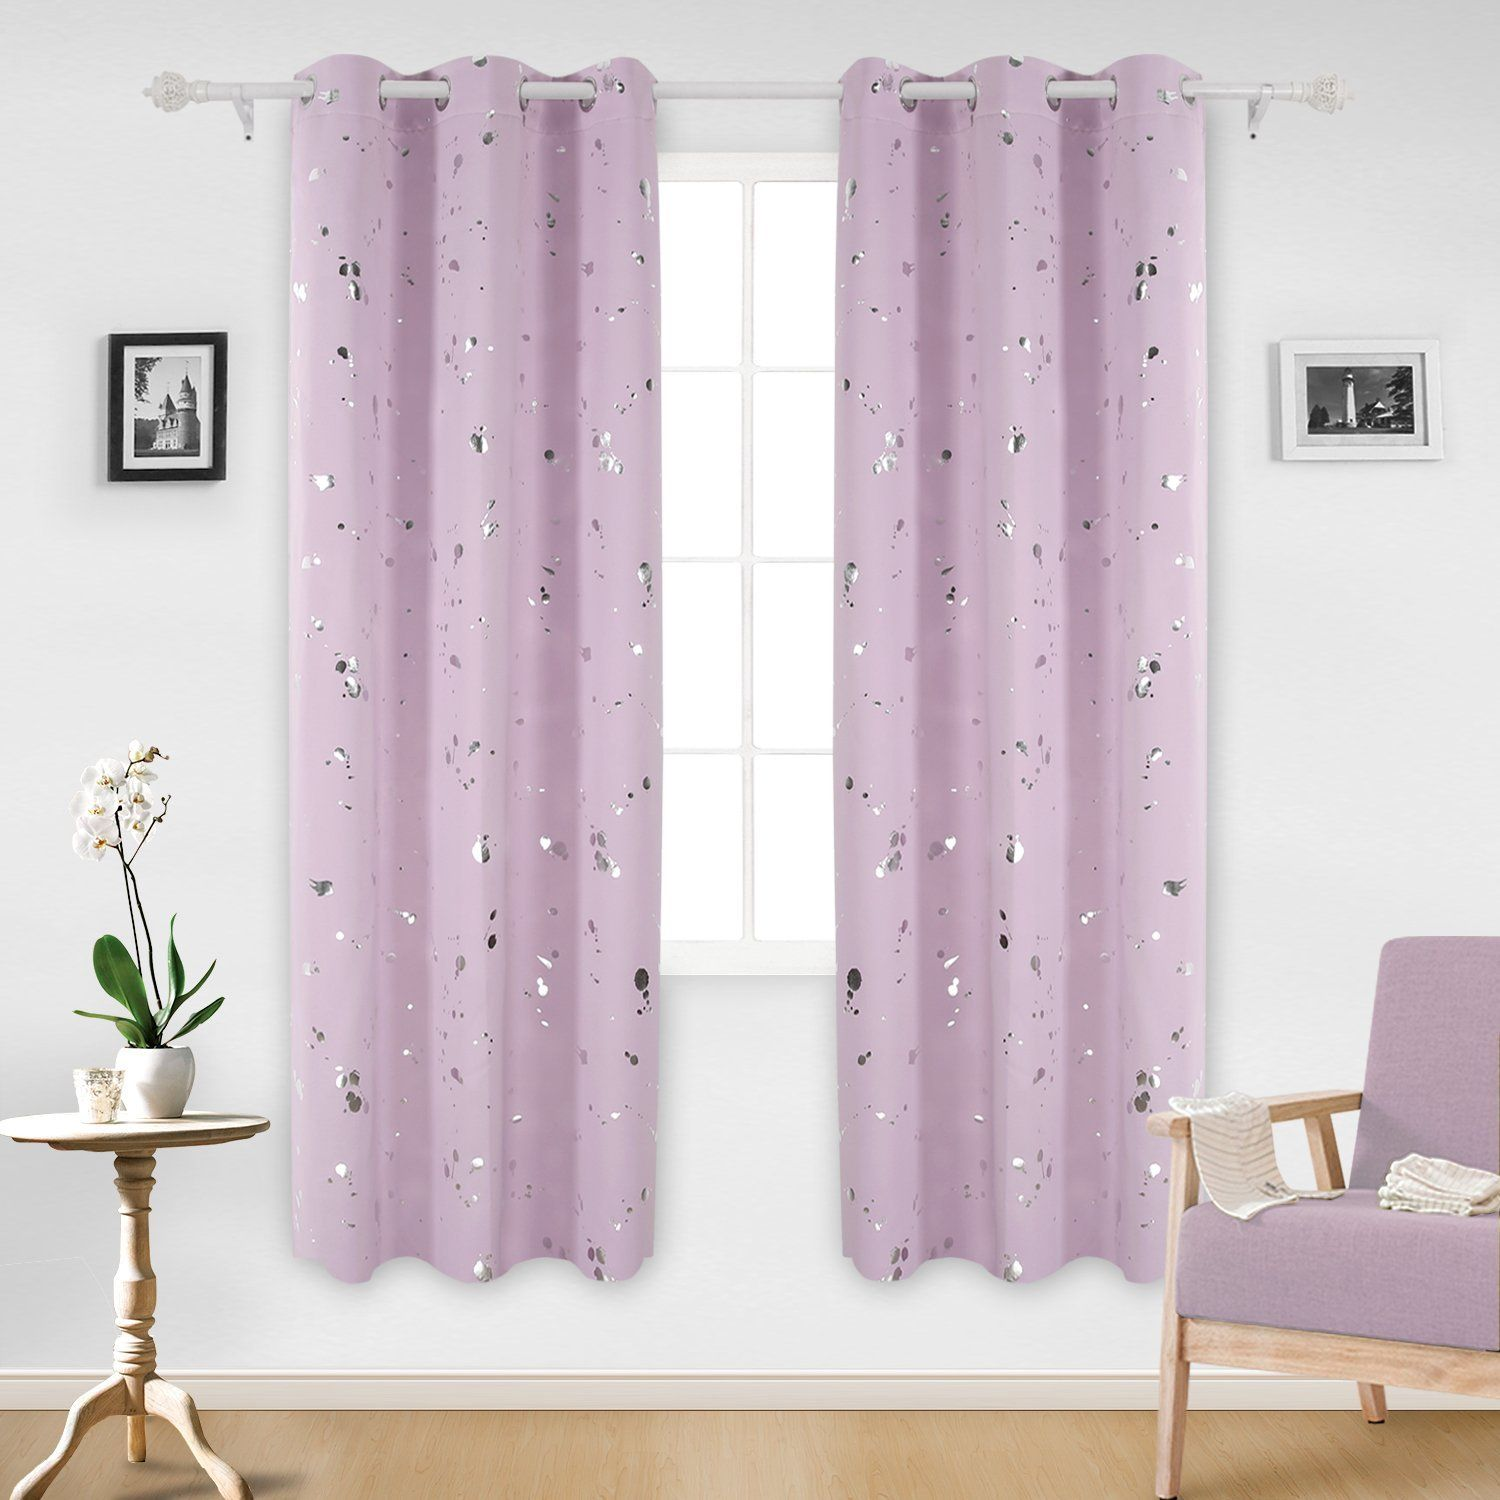 sheer curtains image girl nursery lillyas curtain full baby giveaway size dreaded for of room nurseryblush hibbs girlscurtains monika ideas girls girlsblackout